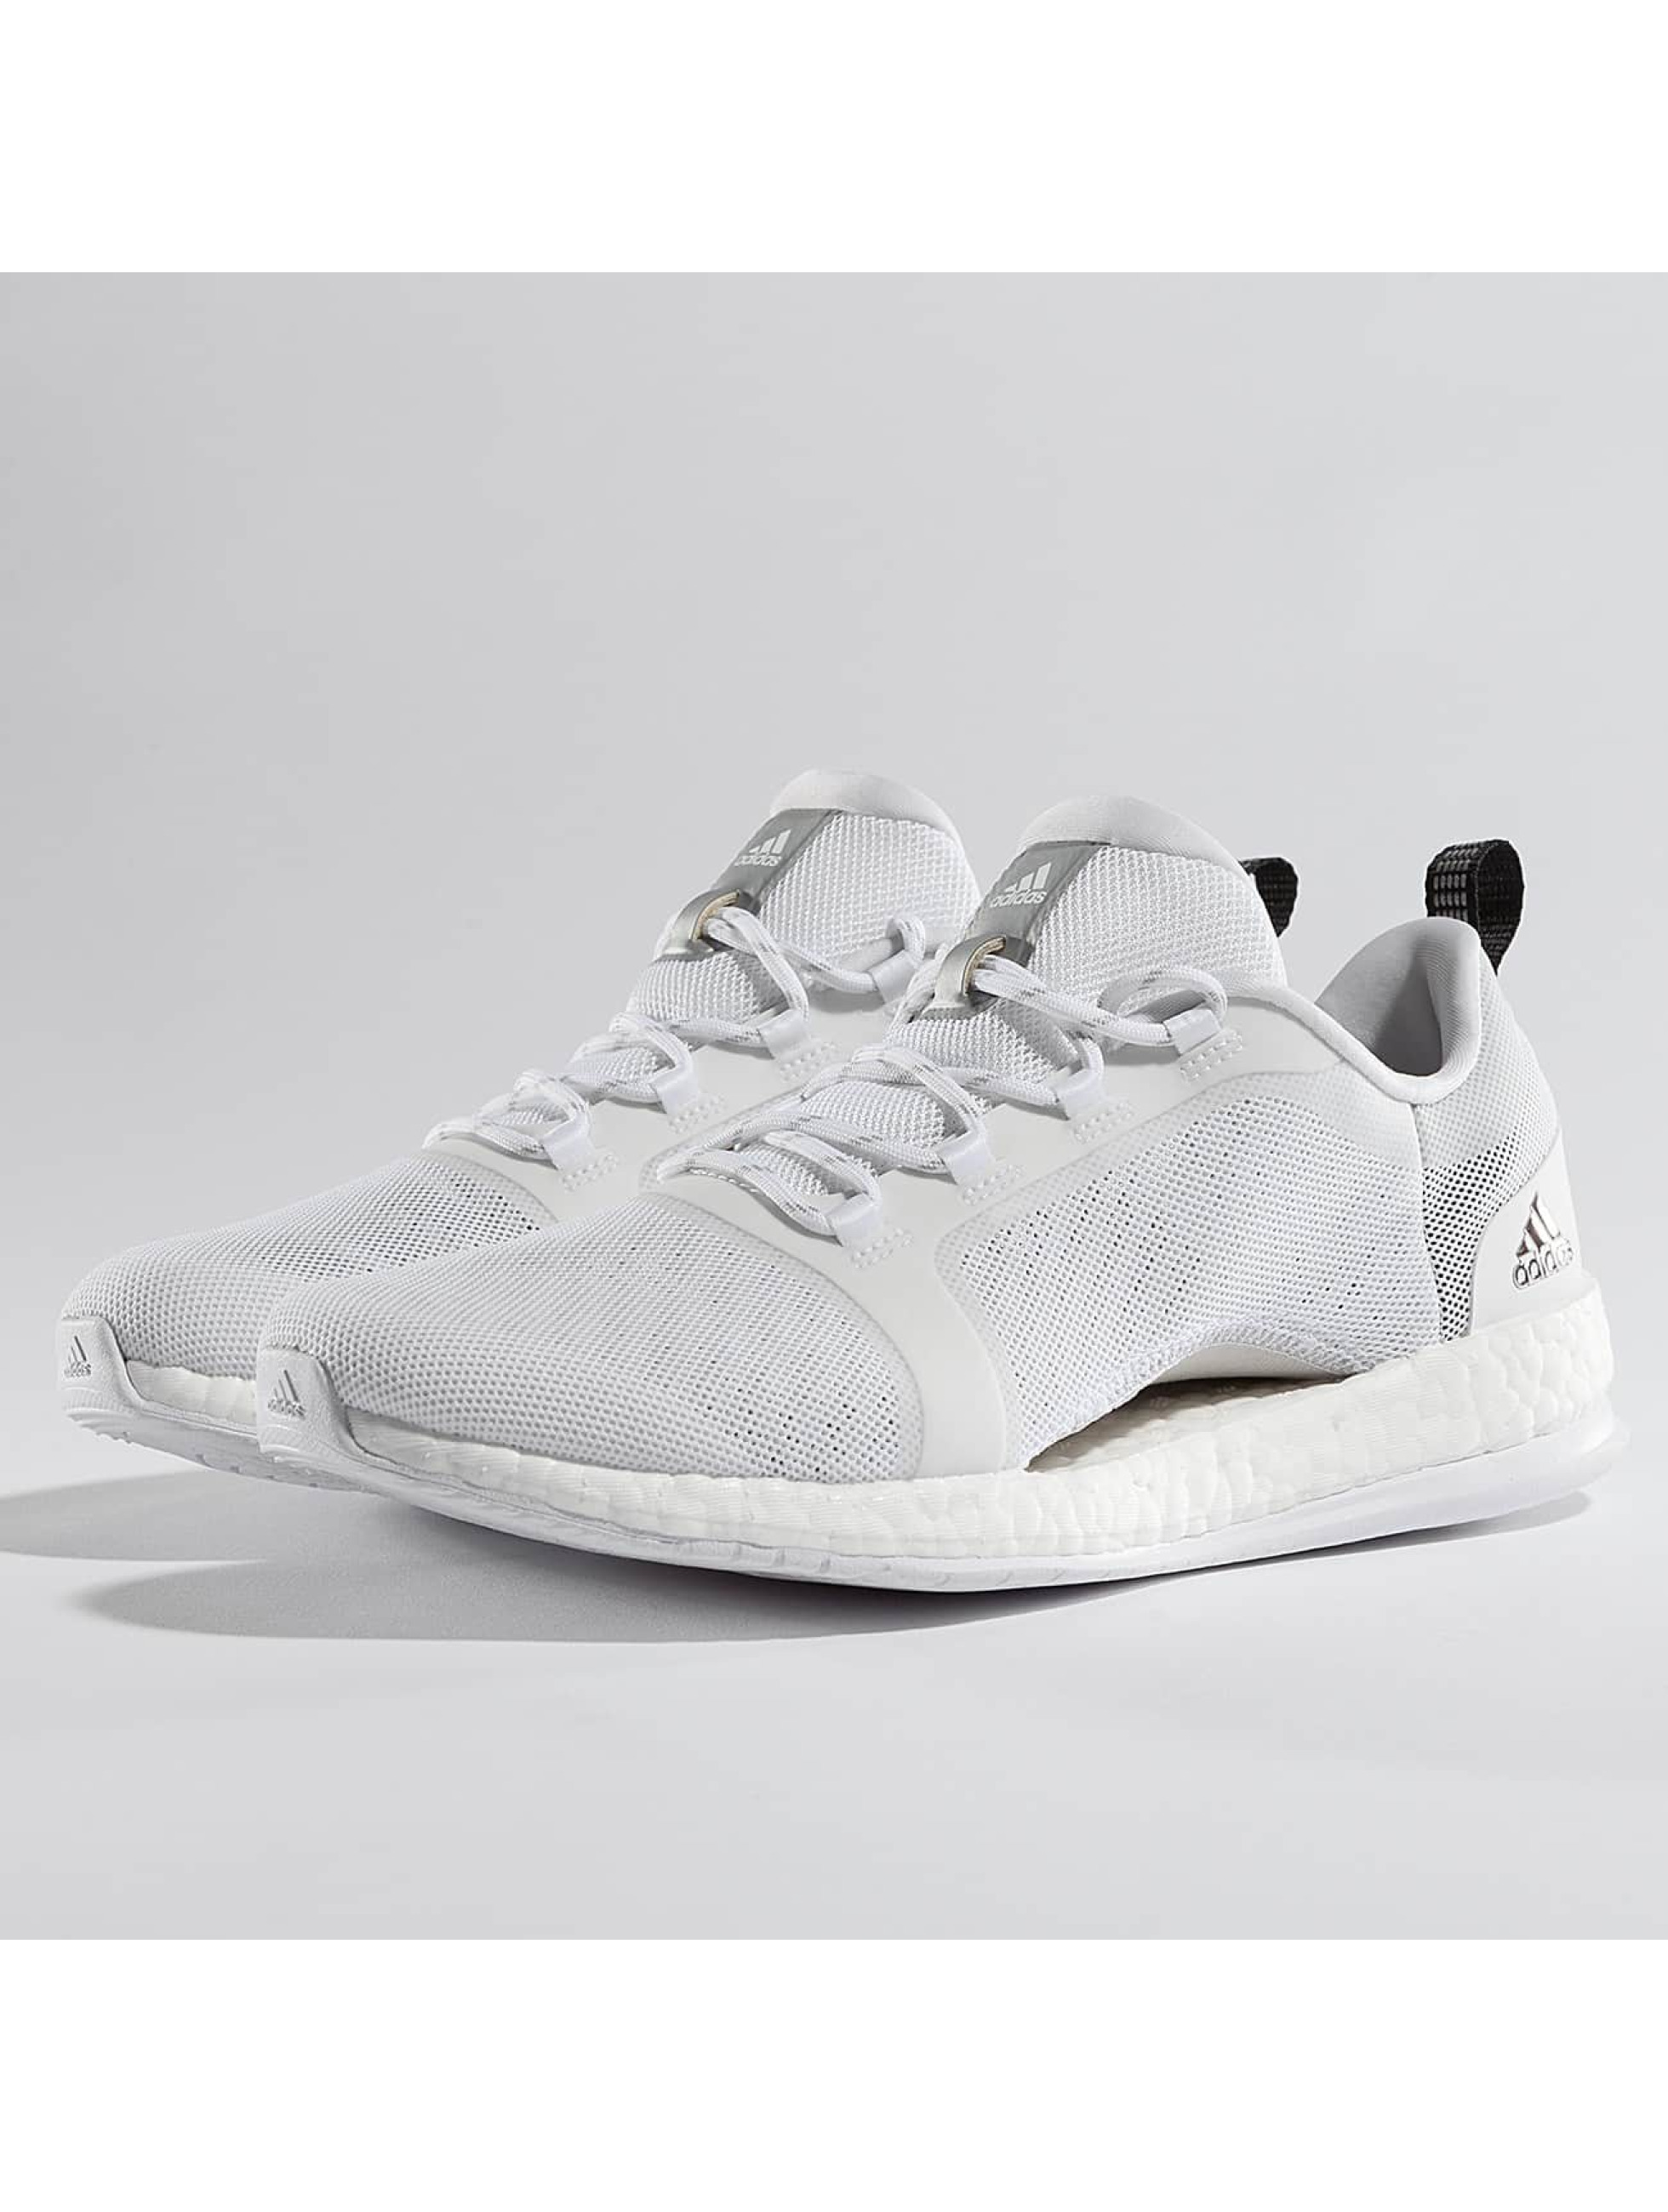 adidas Performance Frauen Sneaker Pure Boost X TR 2 Sneakers in weiß